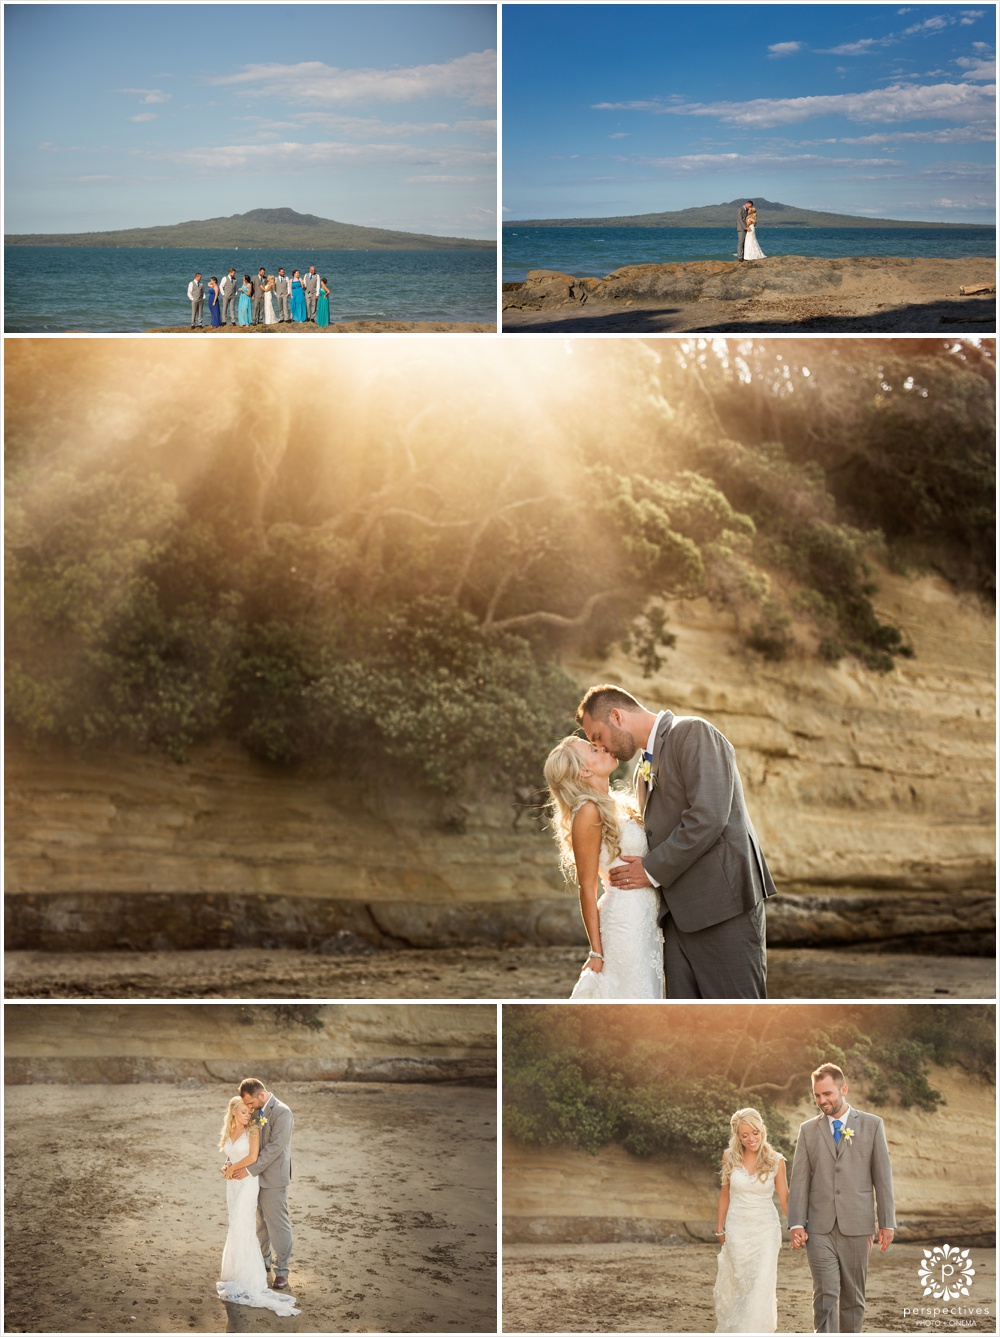 devonport beach wedding